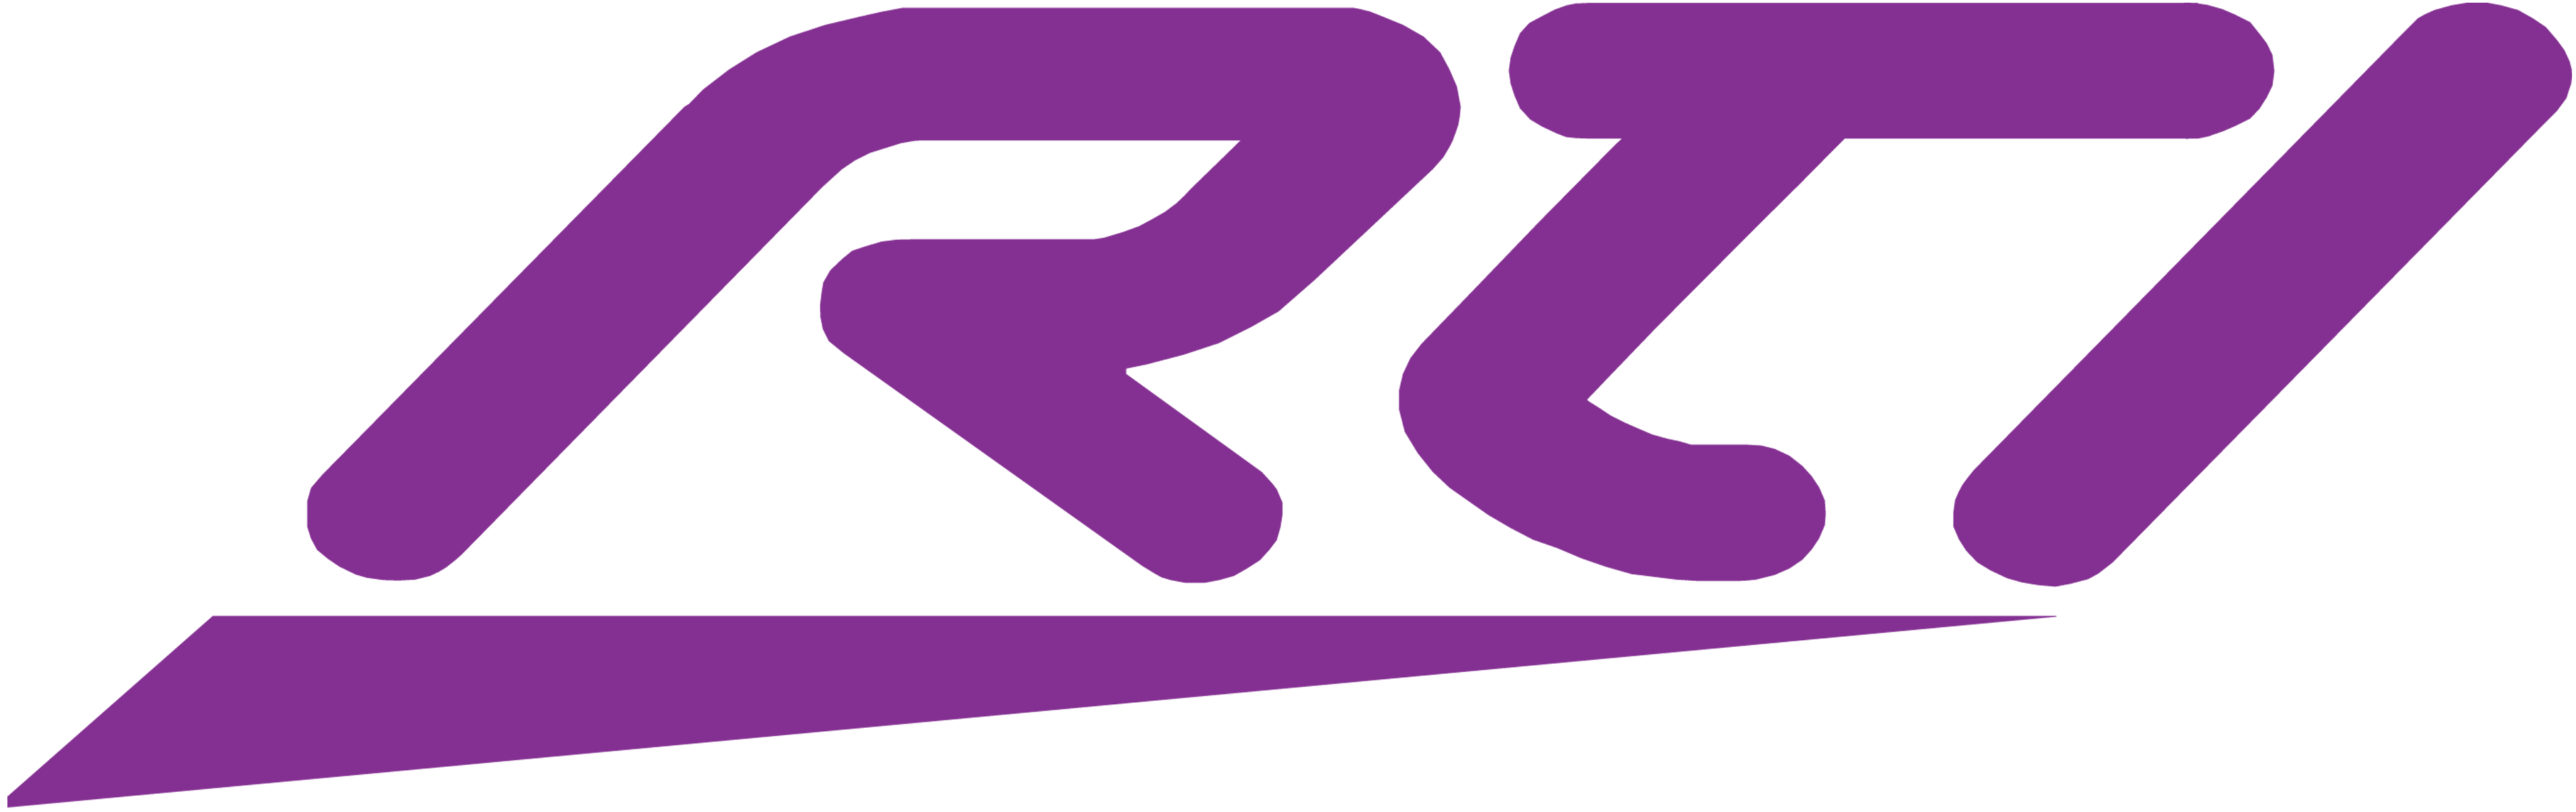 logo_company_products_rti1